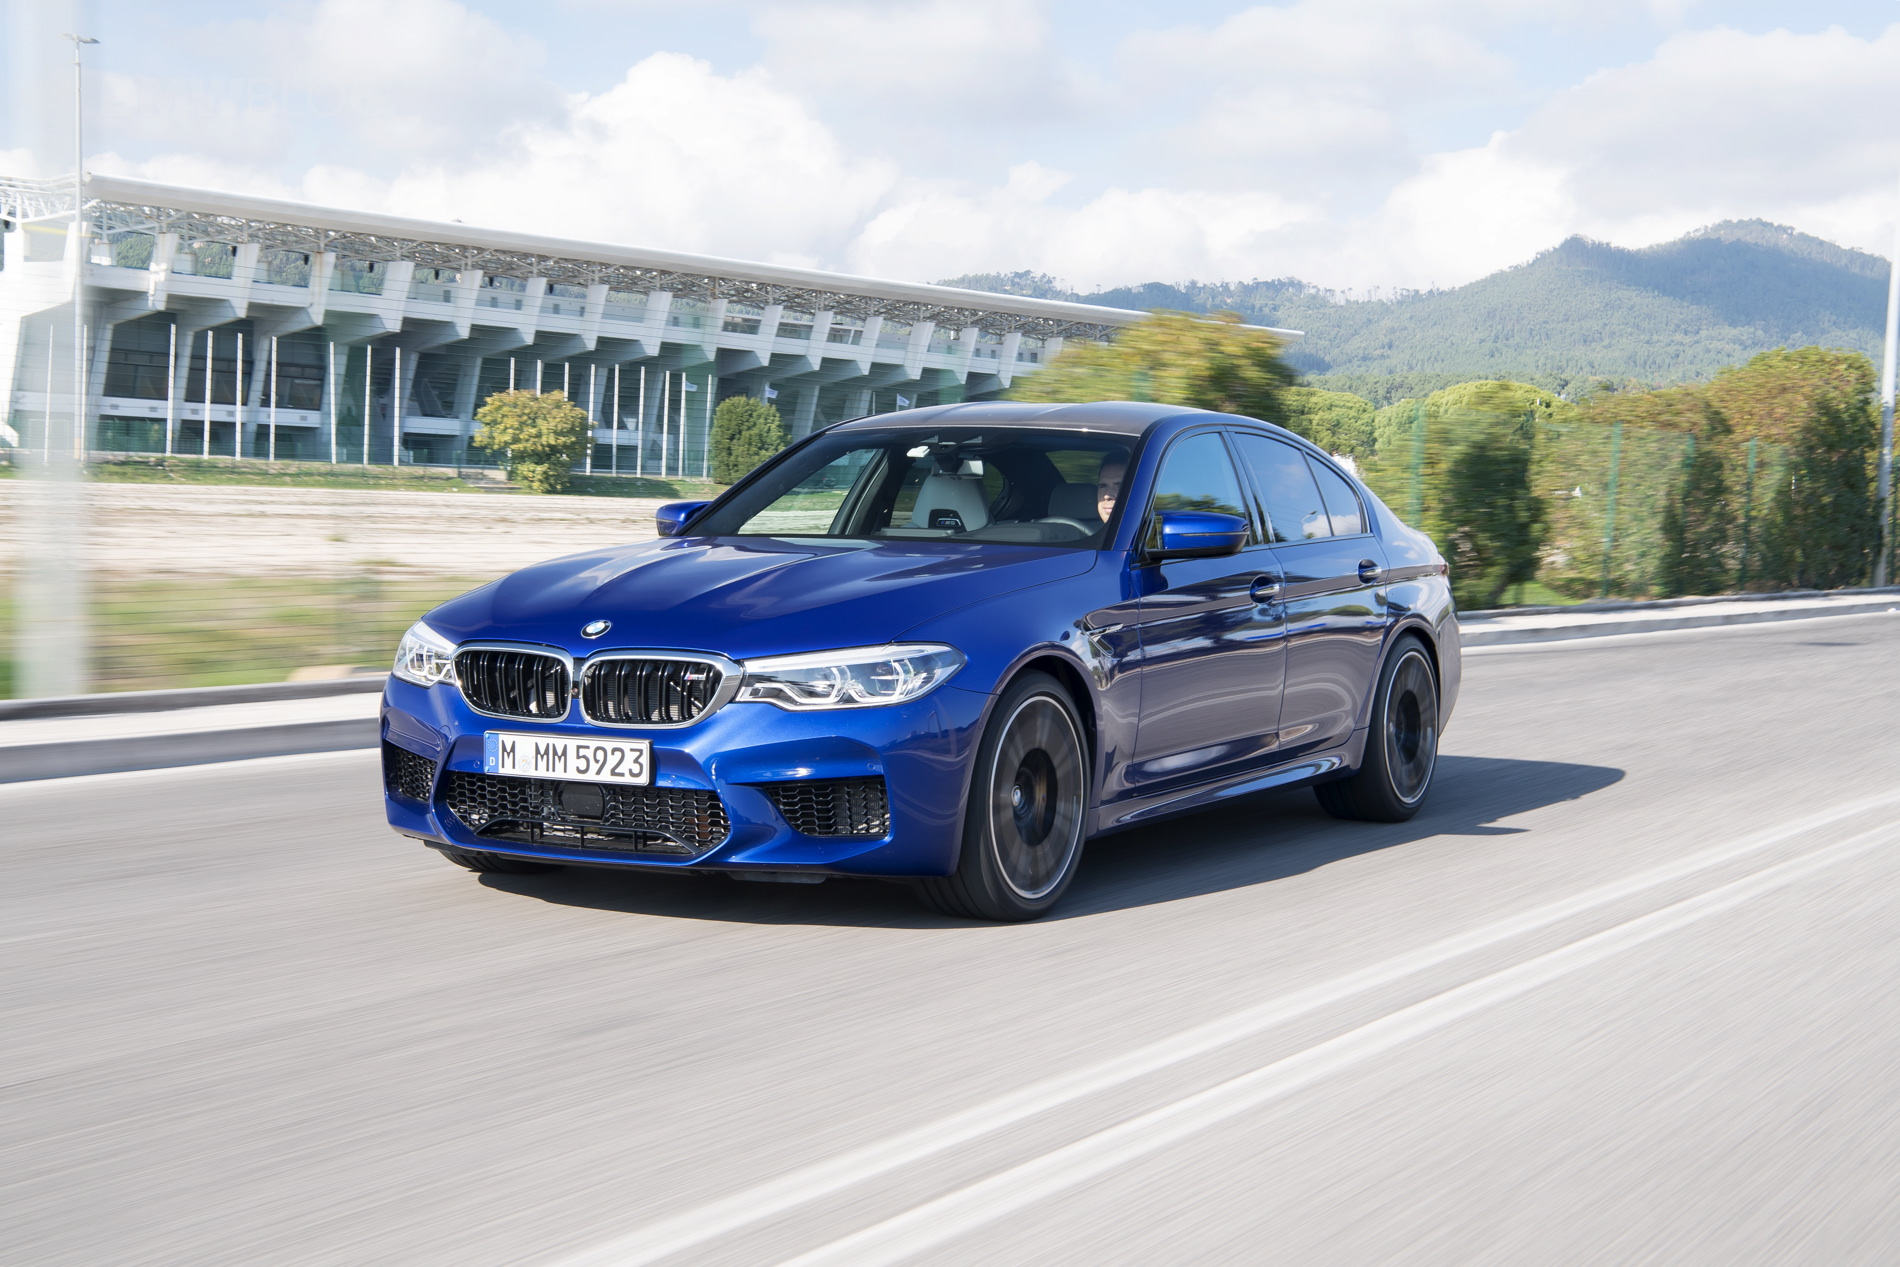 2018 BMW M5 test drive horatiu 05